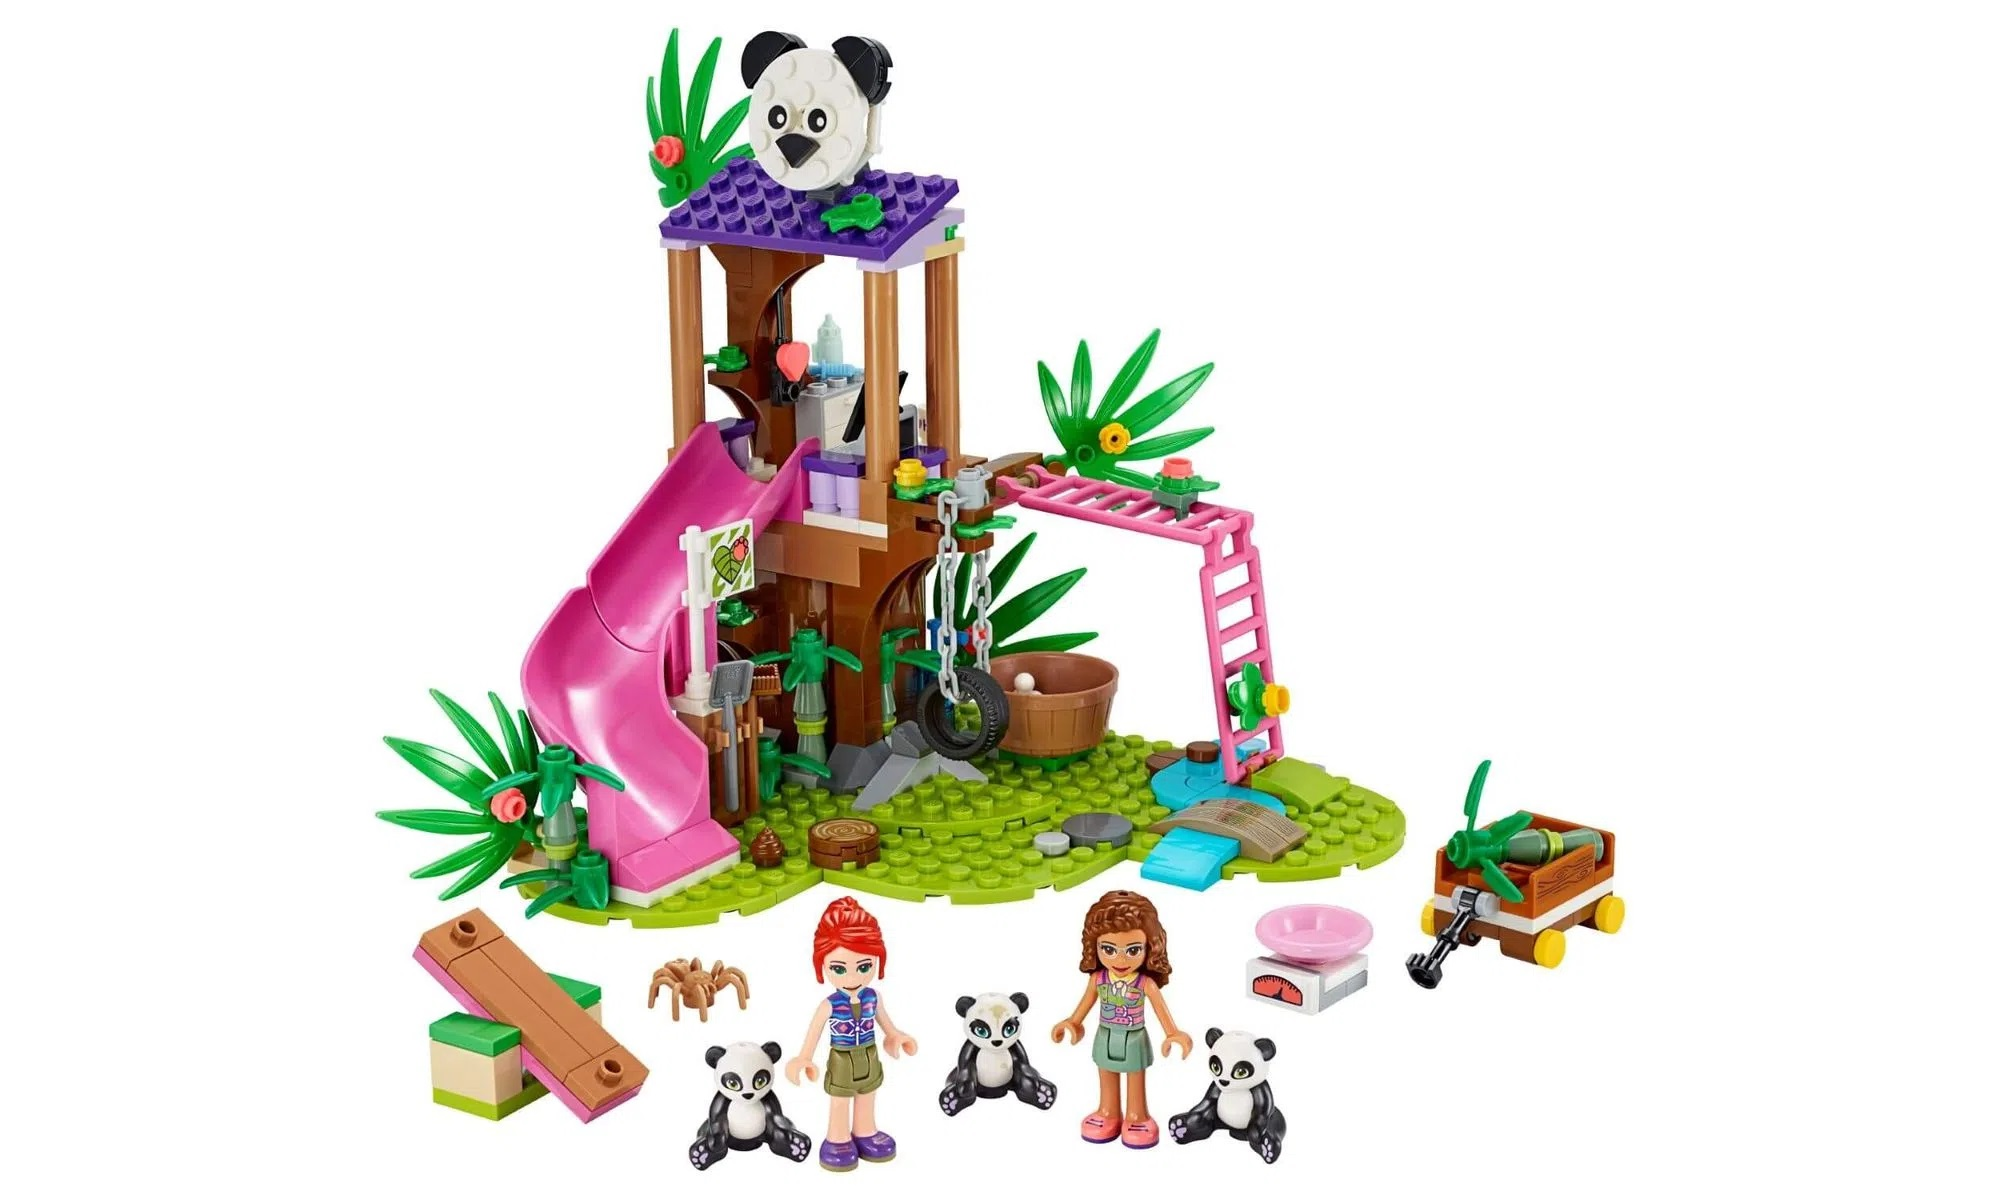 LEGO Friends - Casa do Panda na Arvore da Selva 41422